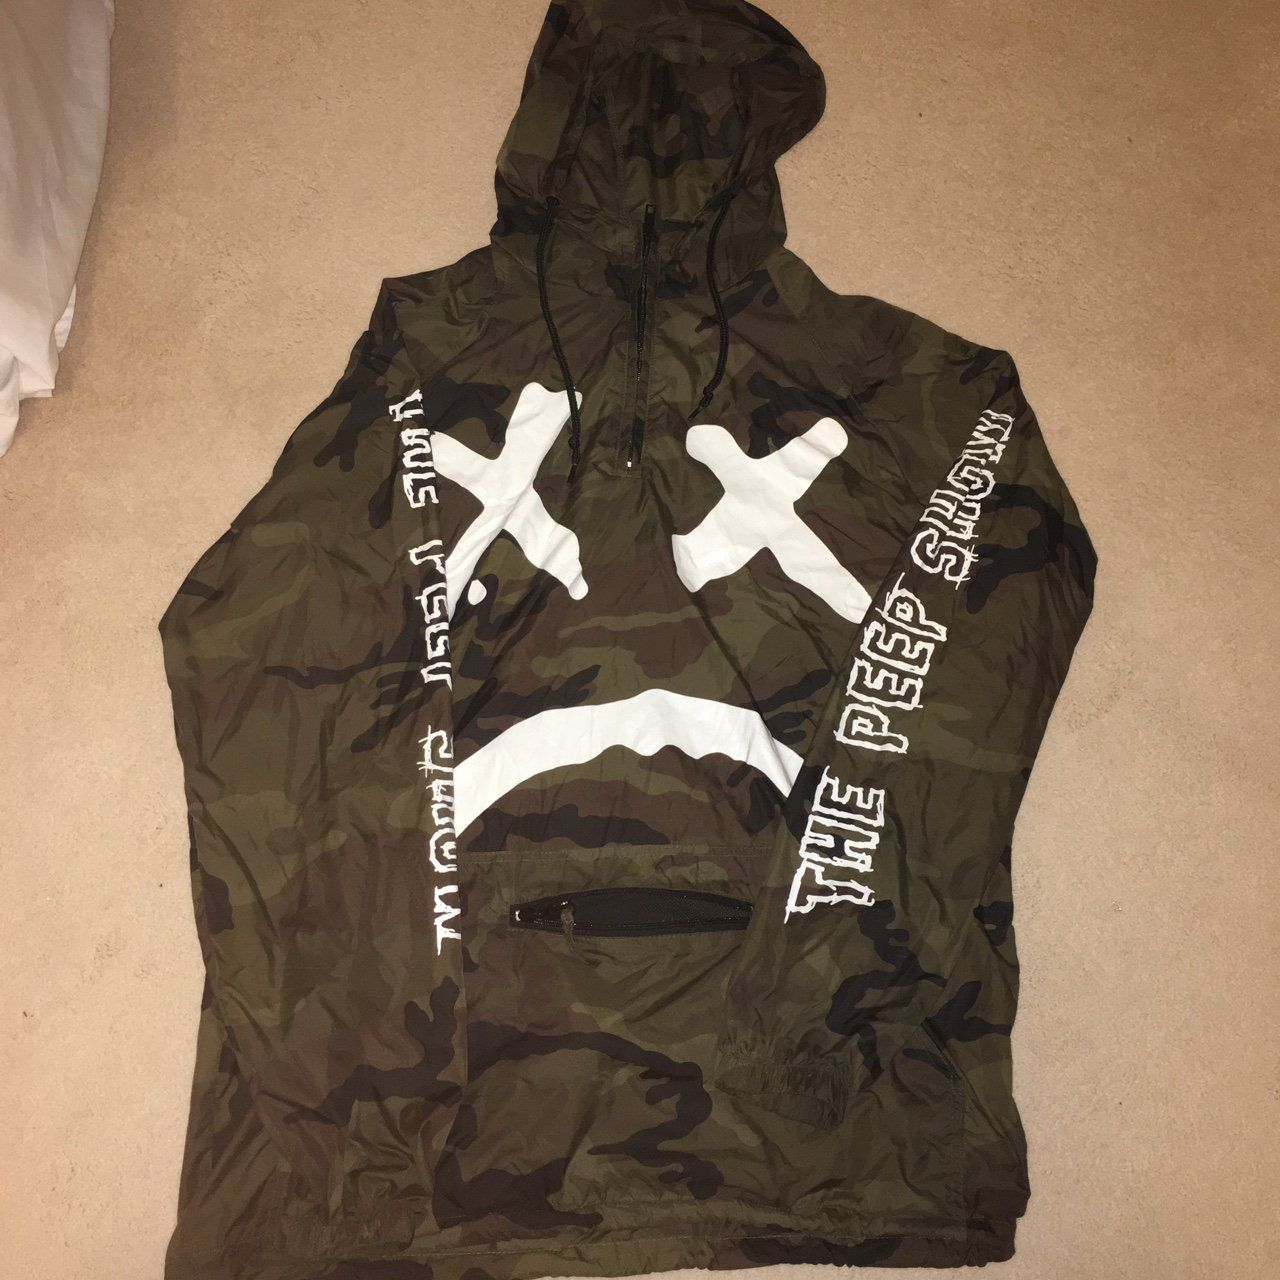 370319ee lil peep - the peep show windbreaker only one on depop (rare) size medium  worn a few times but no damage or signs of wear message me offers above £60  FTP,